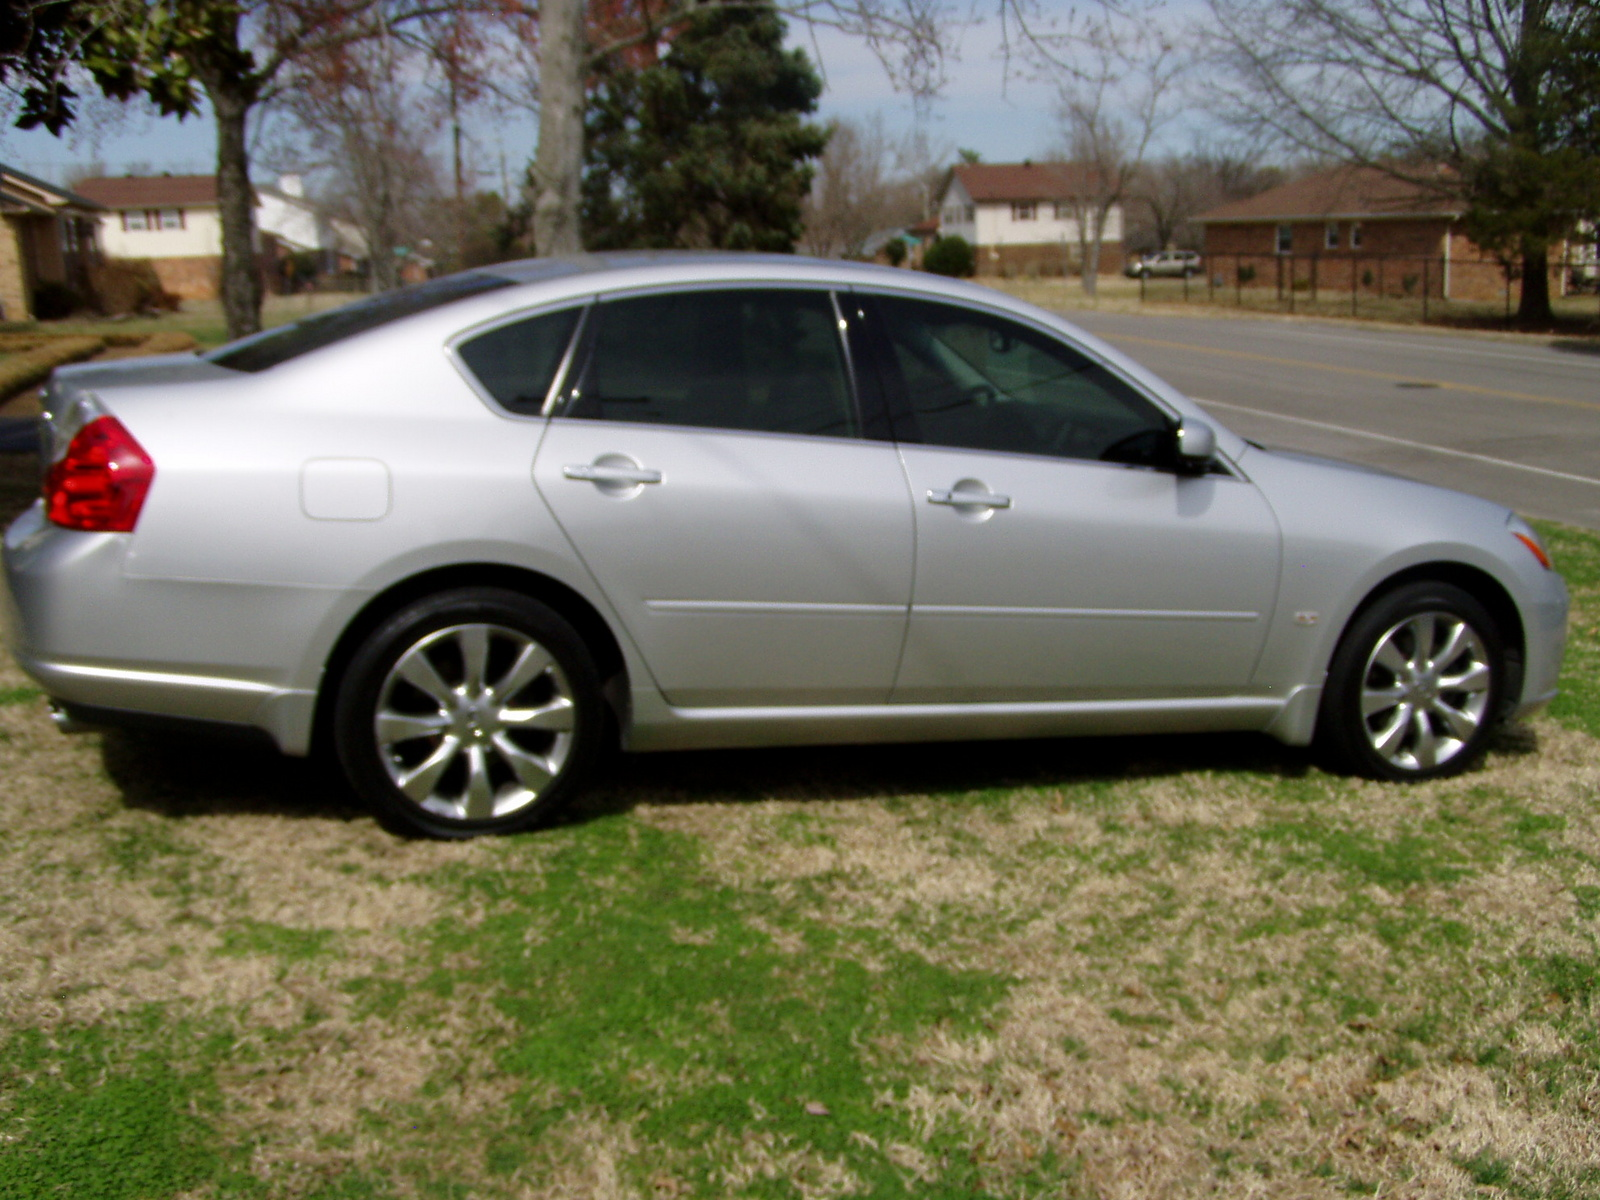 Picture of 2007 infiniti m35 4 dr awd exterior - Picture Of 2007 Infiniti M35 4 Dr Awd Exterior